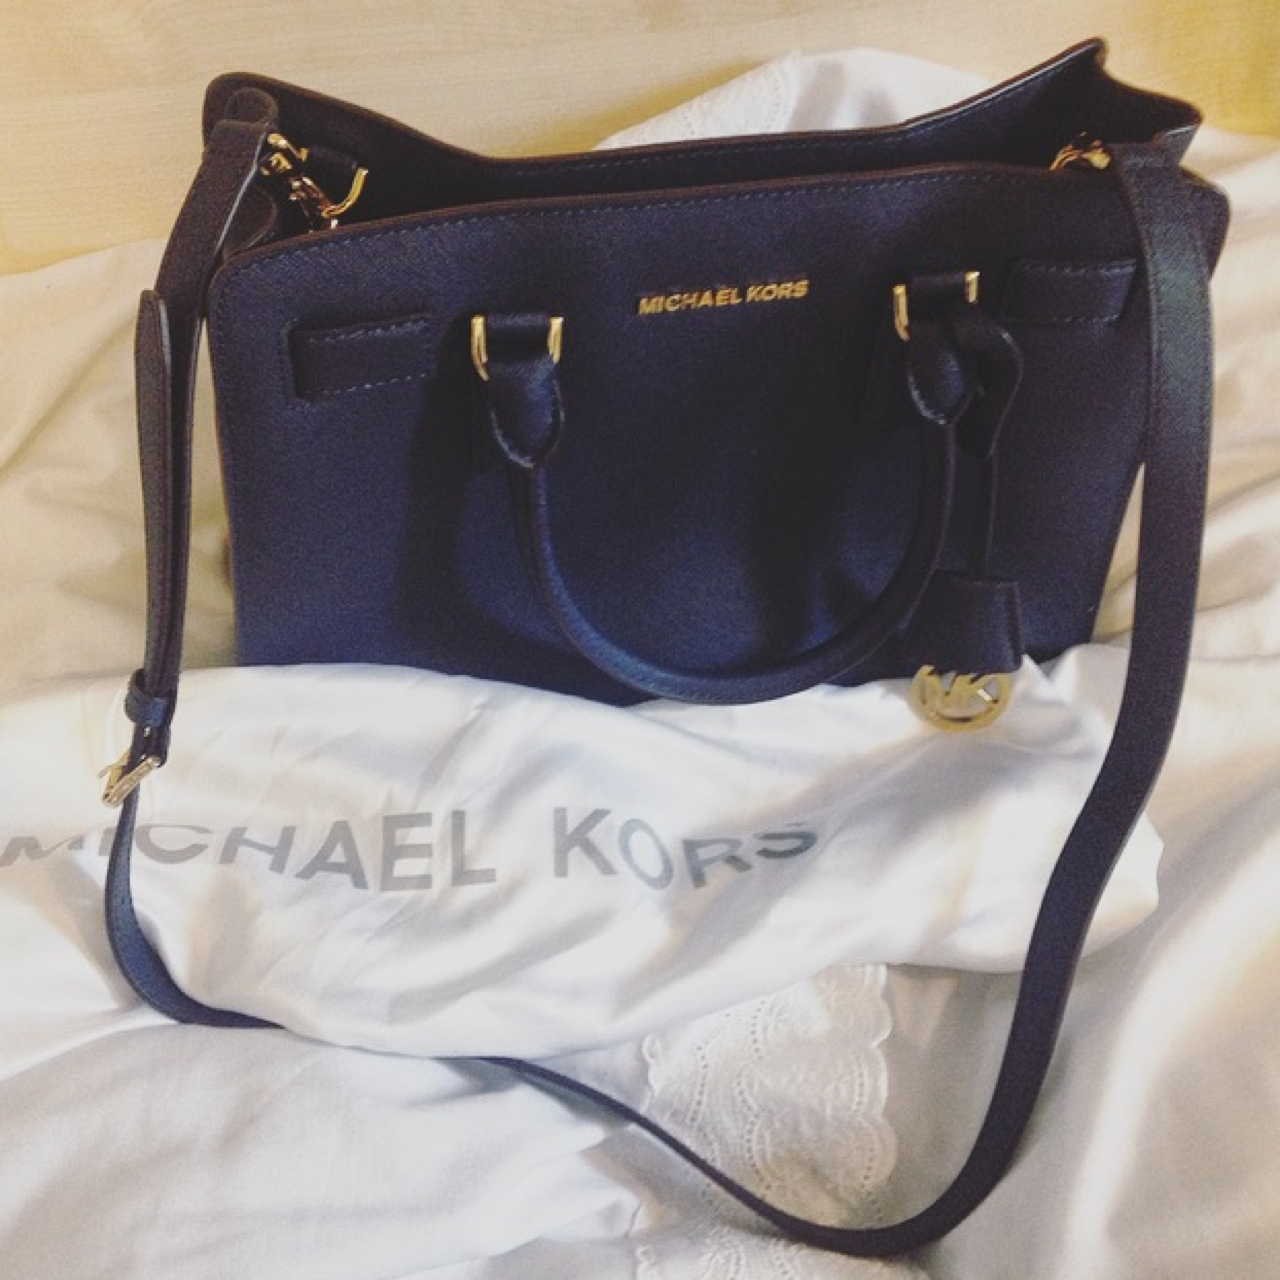 Brand new Michael kors Dillon medium saffiano navy Depop